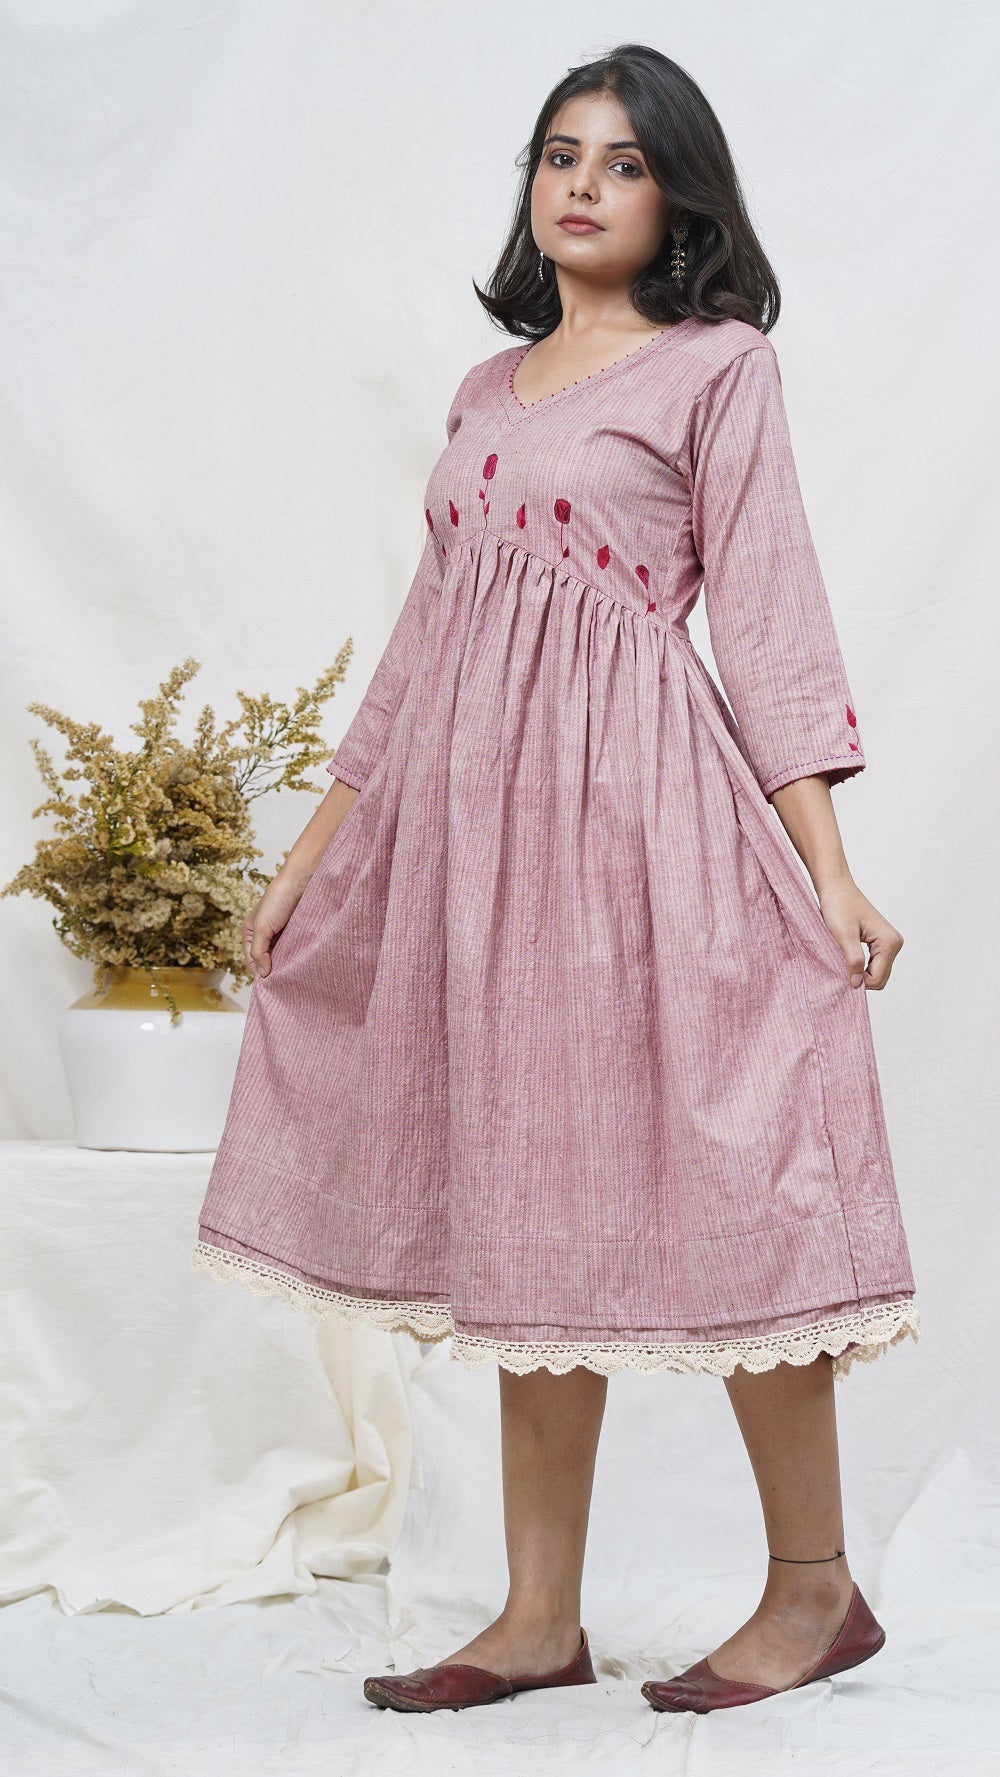 Rosy embroidered midi dress online at bebaakstudio.com